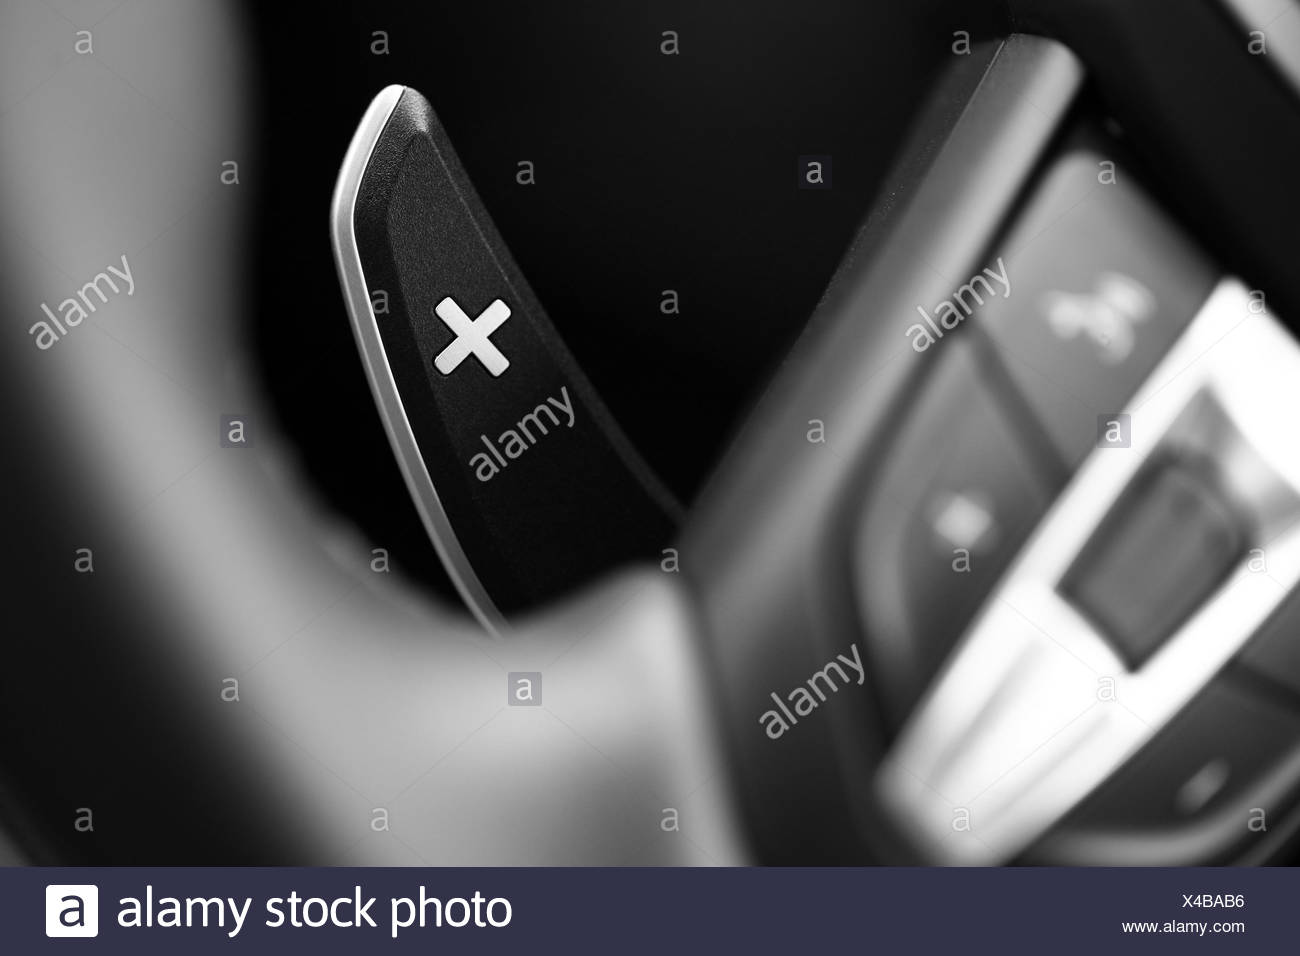 close up shot of a manual gear changing paddle on a car s steering rh alamy com Close Up Water Photography Close Up Lens for Photography